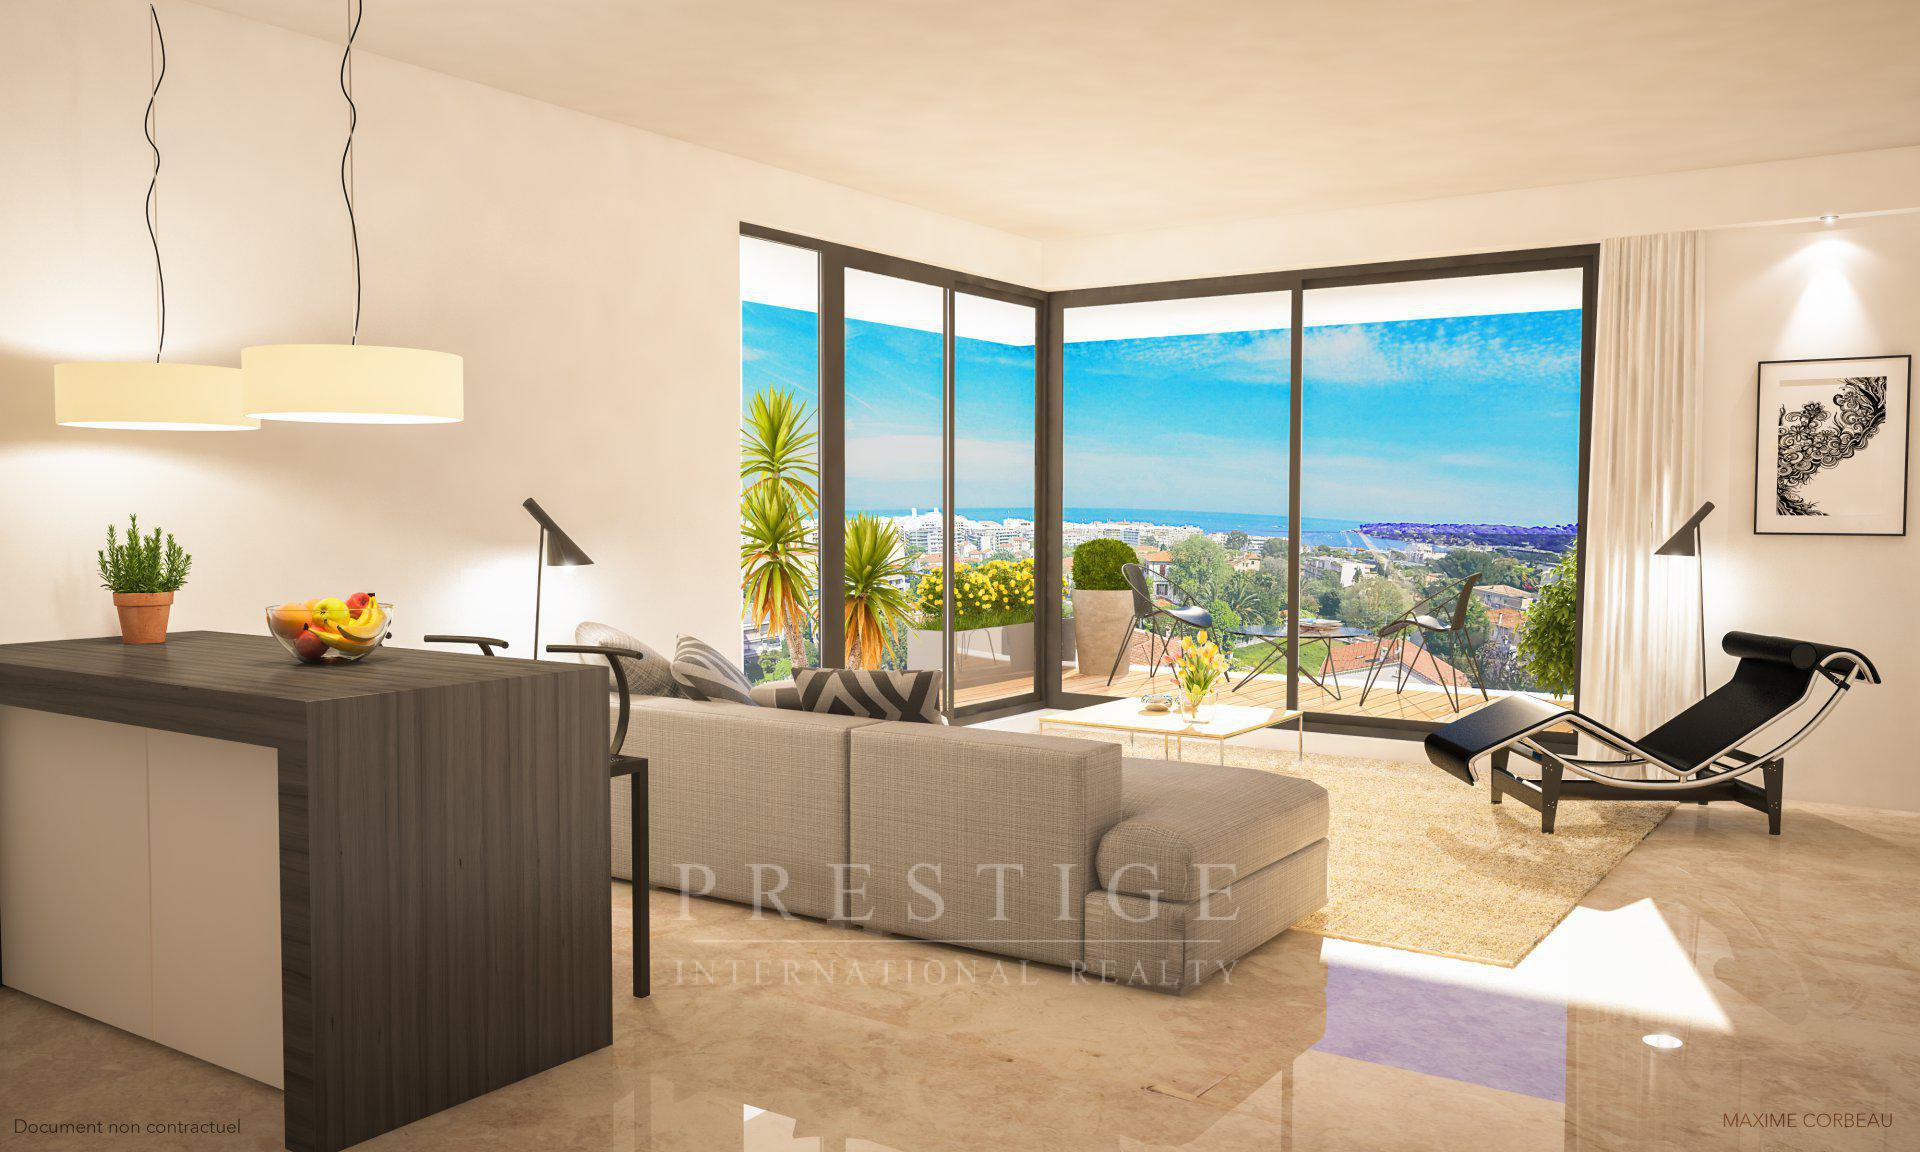 1-Bedroom apartment in Center town Antibes & parking